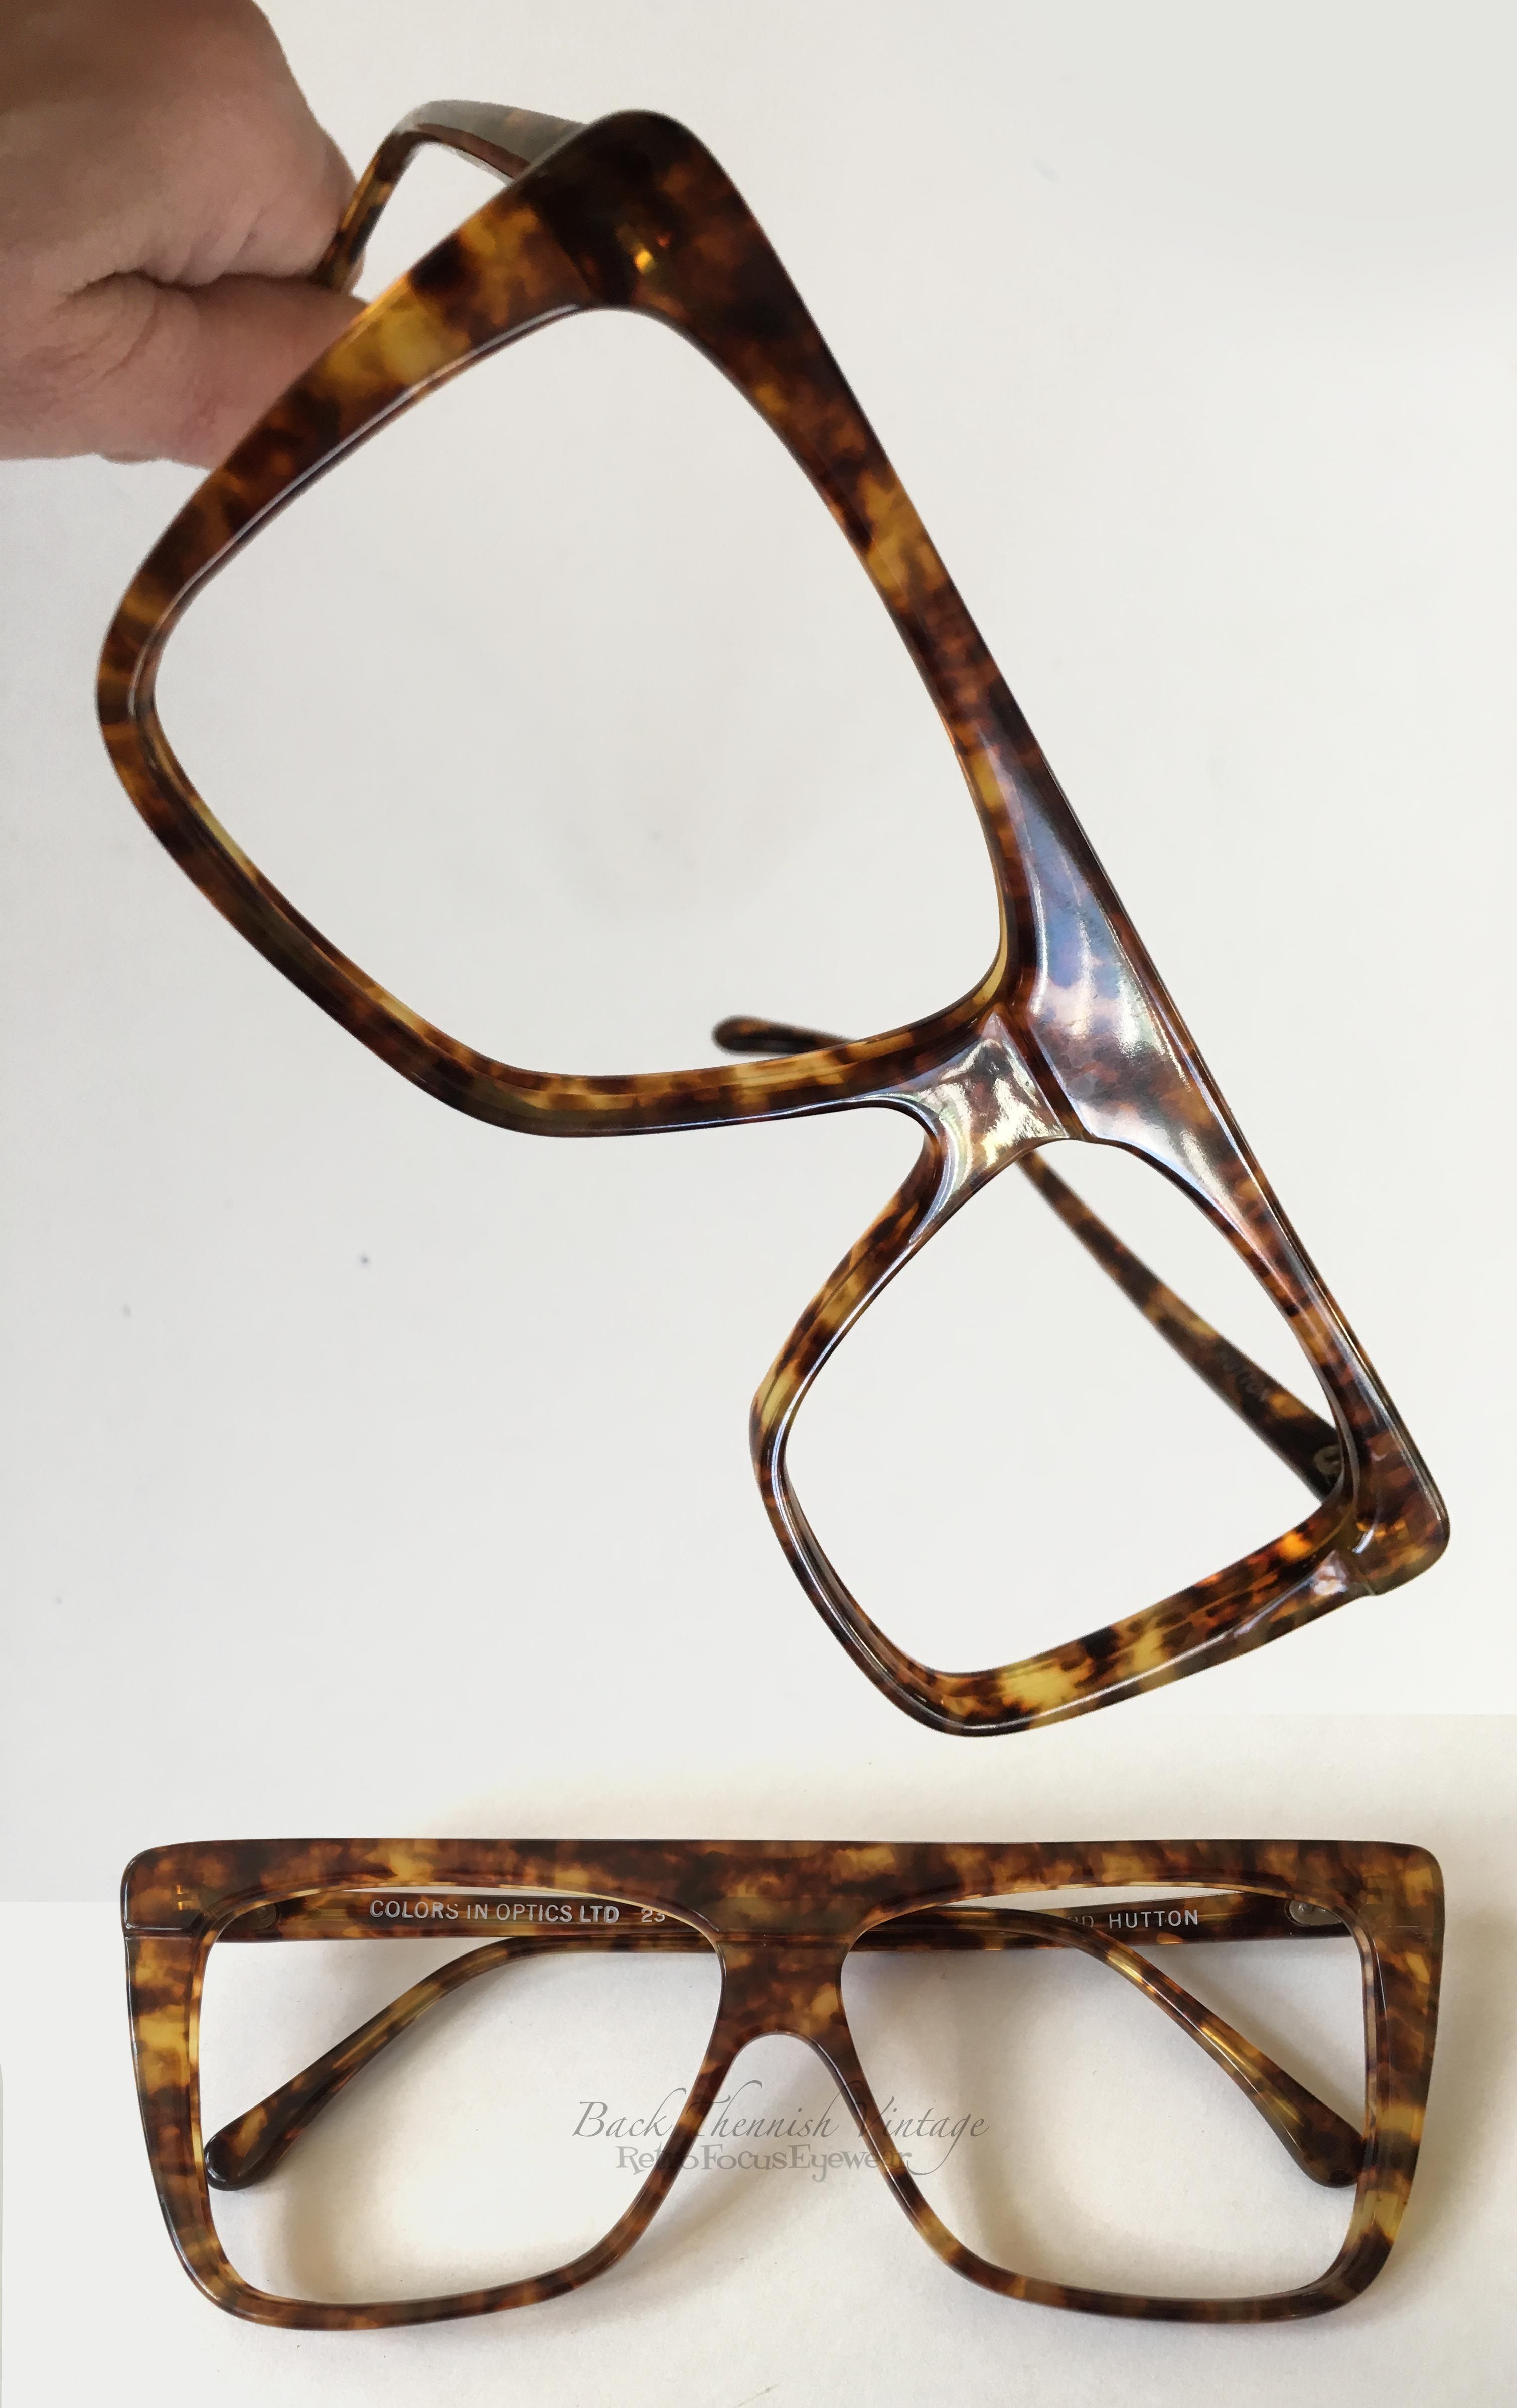 87c138659f67 True vintage 70 s oversized tortoise eyeglasses by Colors in Optics Sanford  Hutton. Straight brow